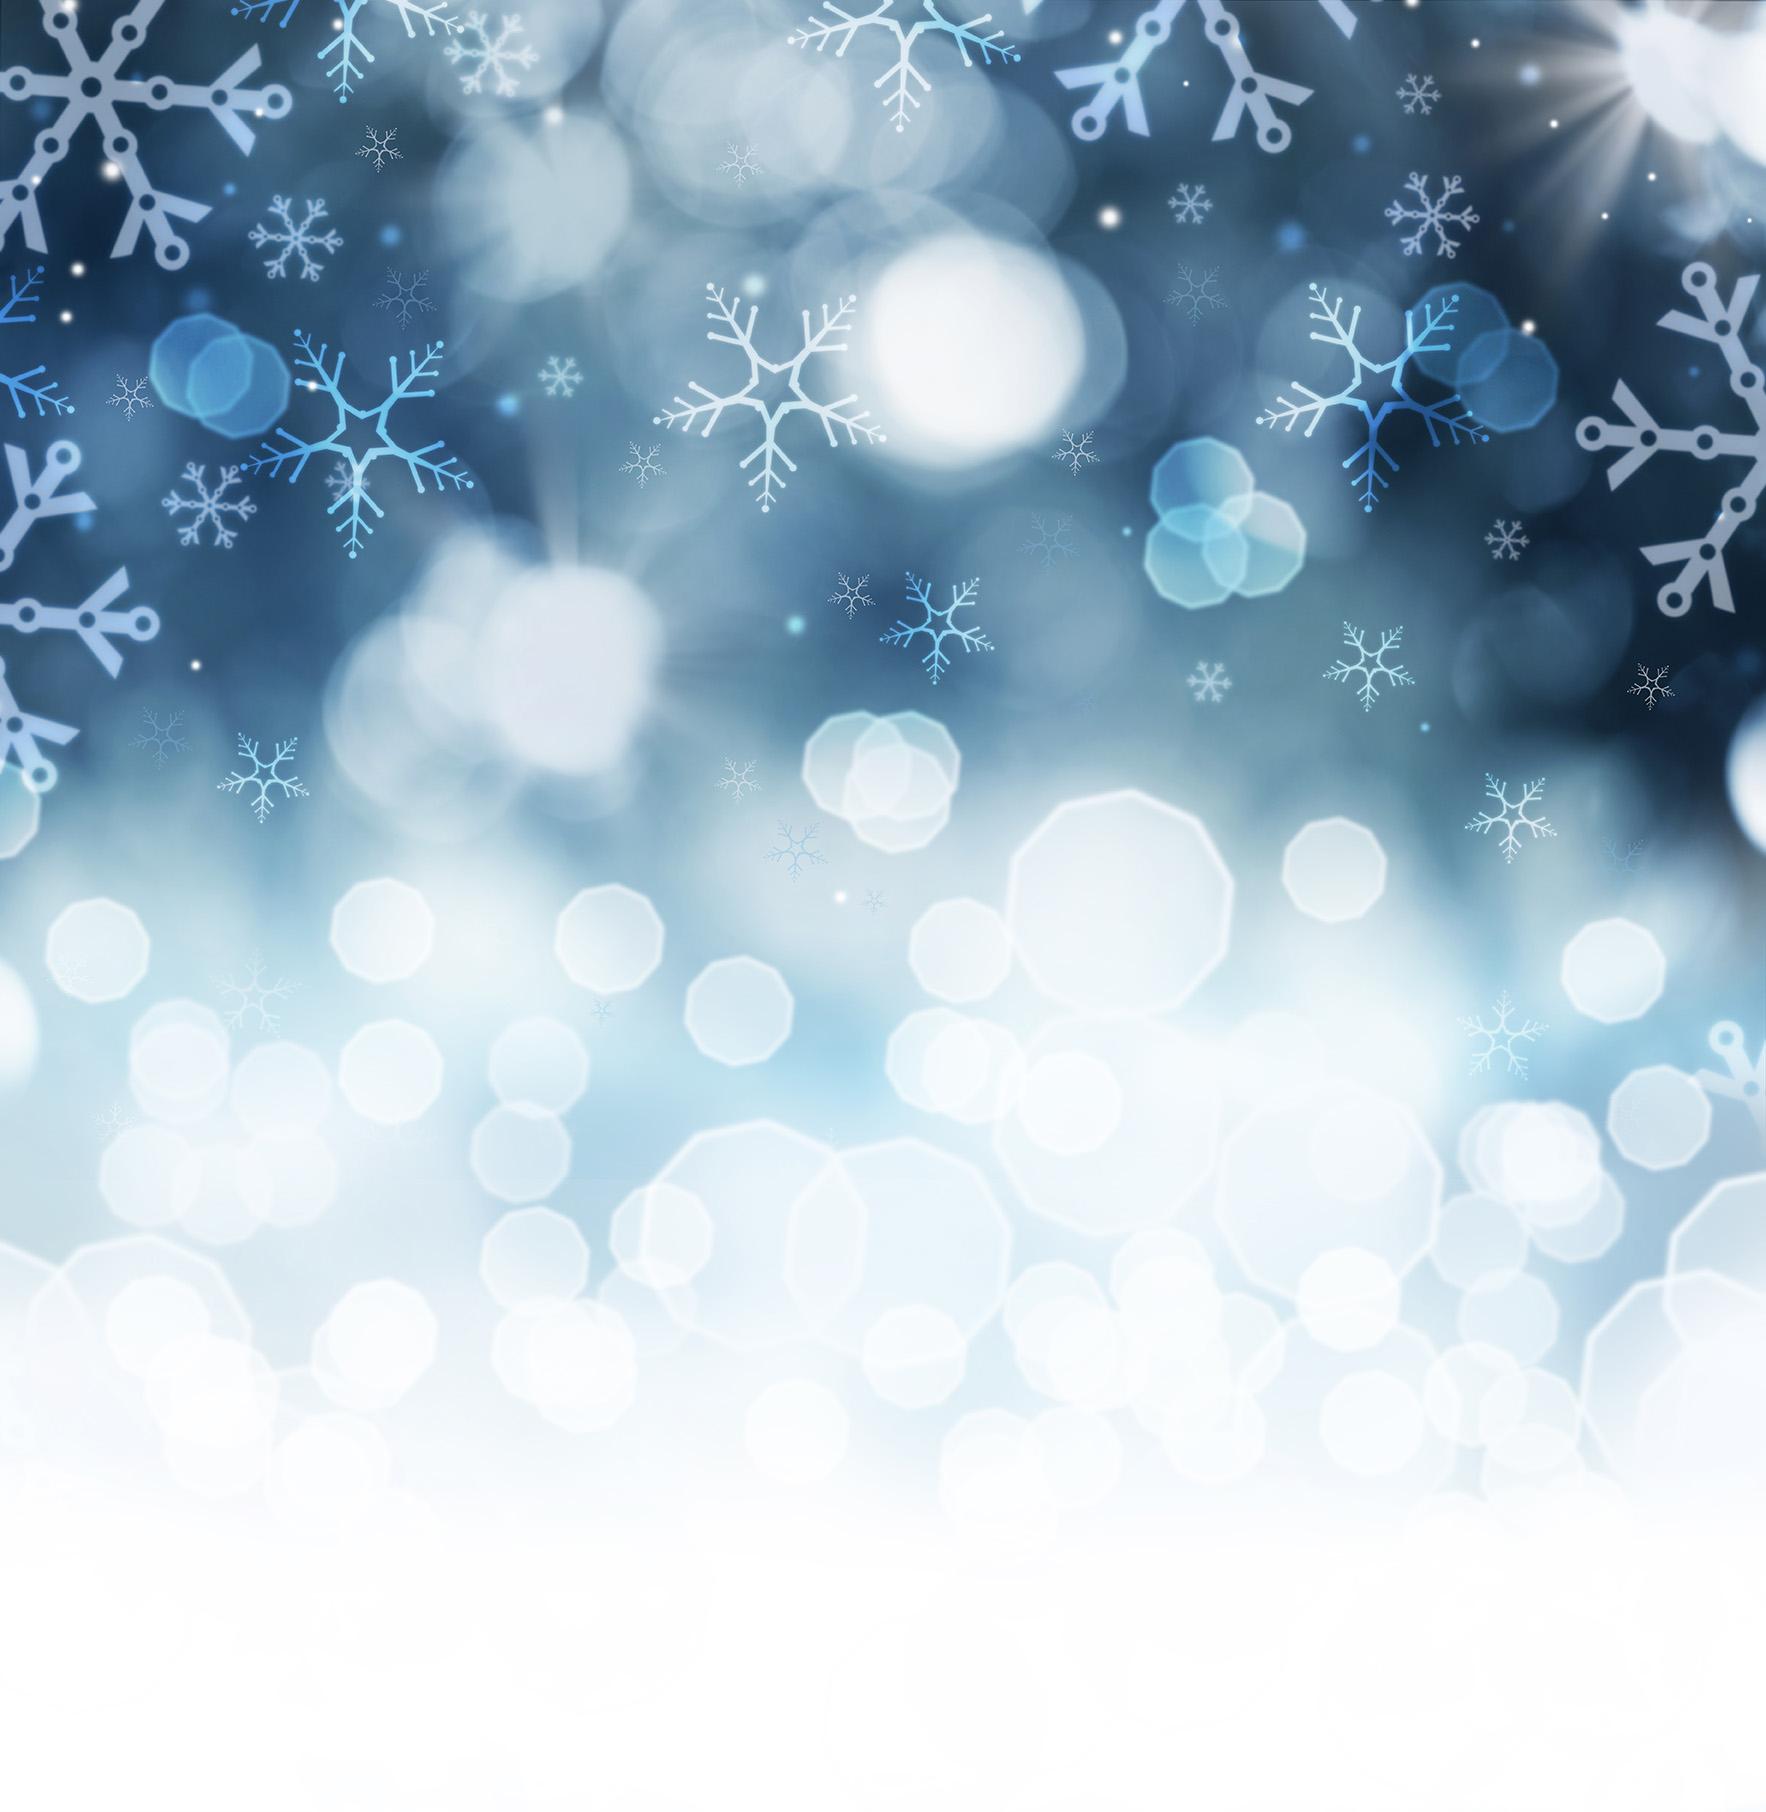 Winter Holiday Snow Background. Christmas Abstract Defocused Bac